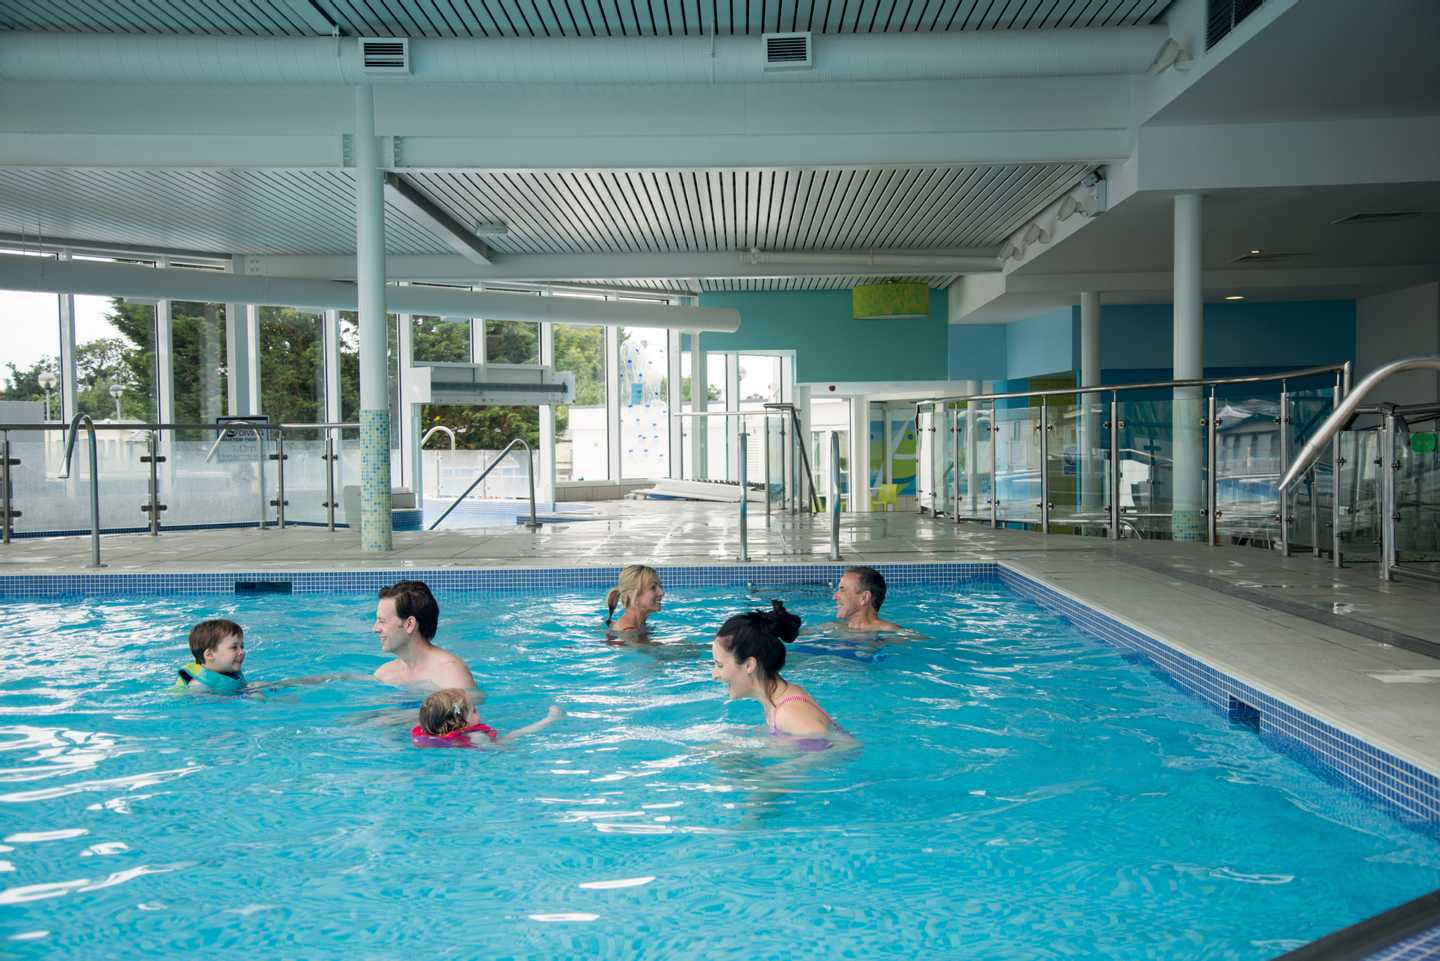 Guests in the indoor pool